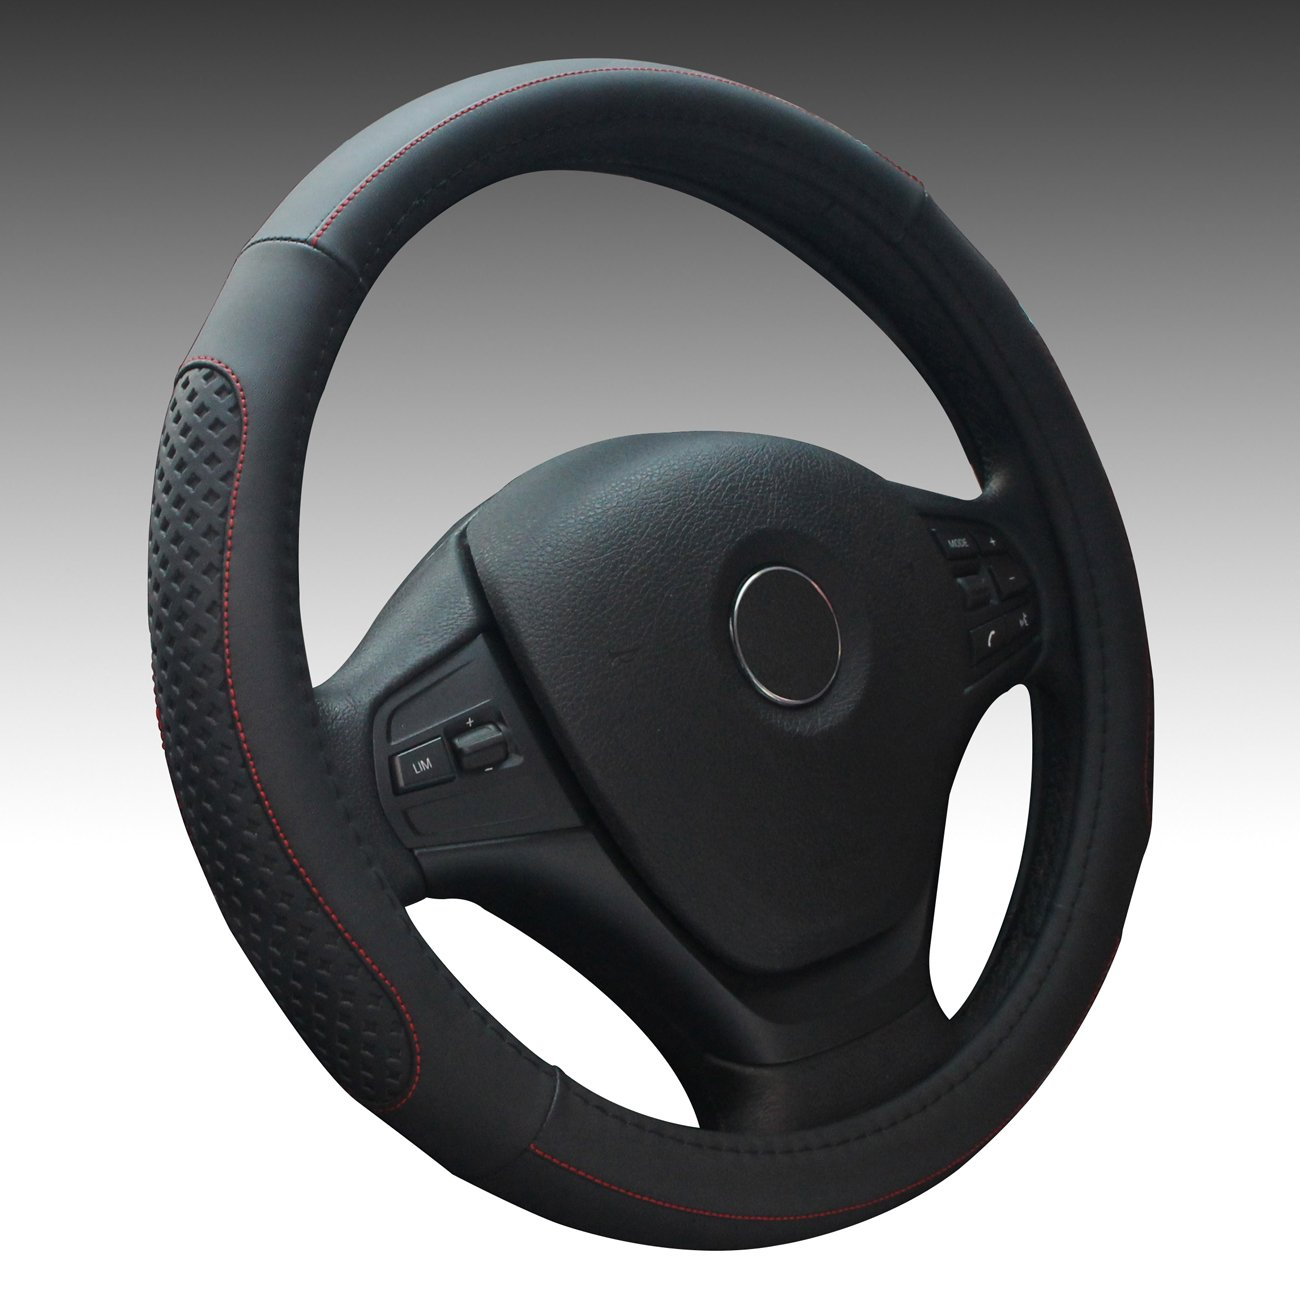 Fstarts Leather Steering Wheel Cover for Auto Car/Truck/Van/SUV (black)